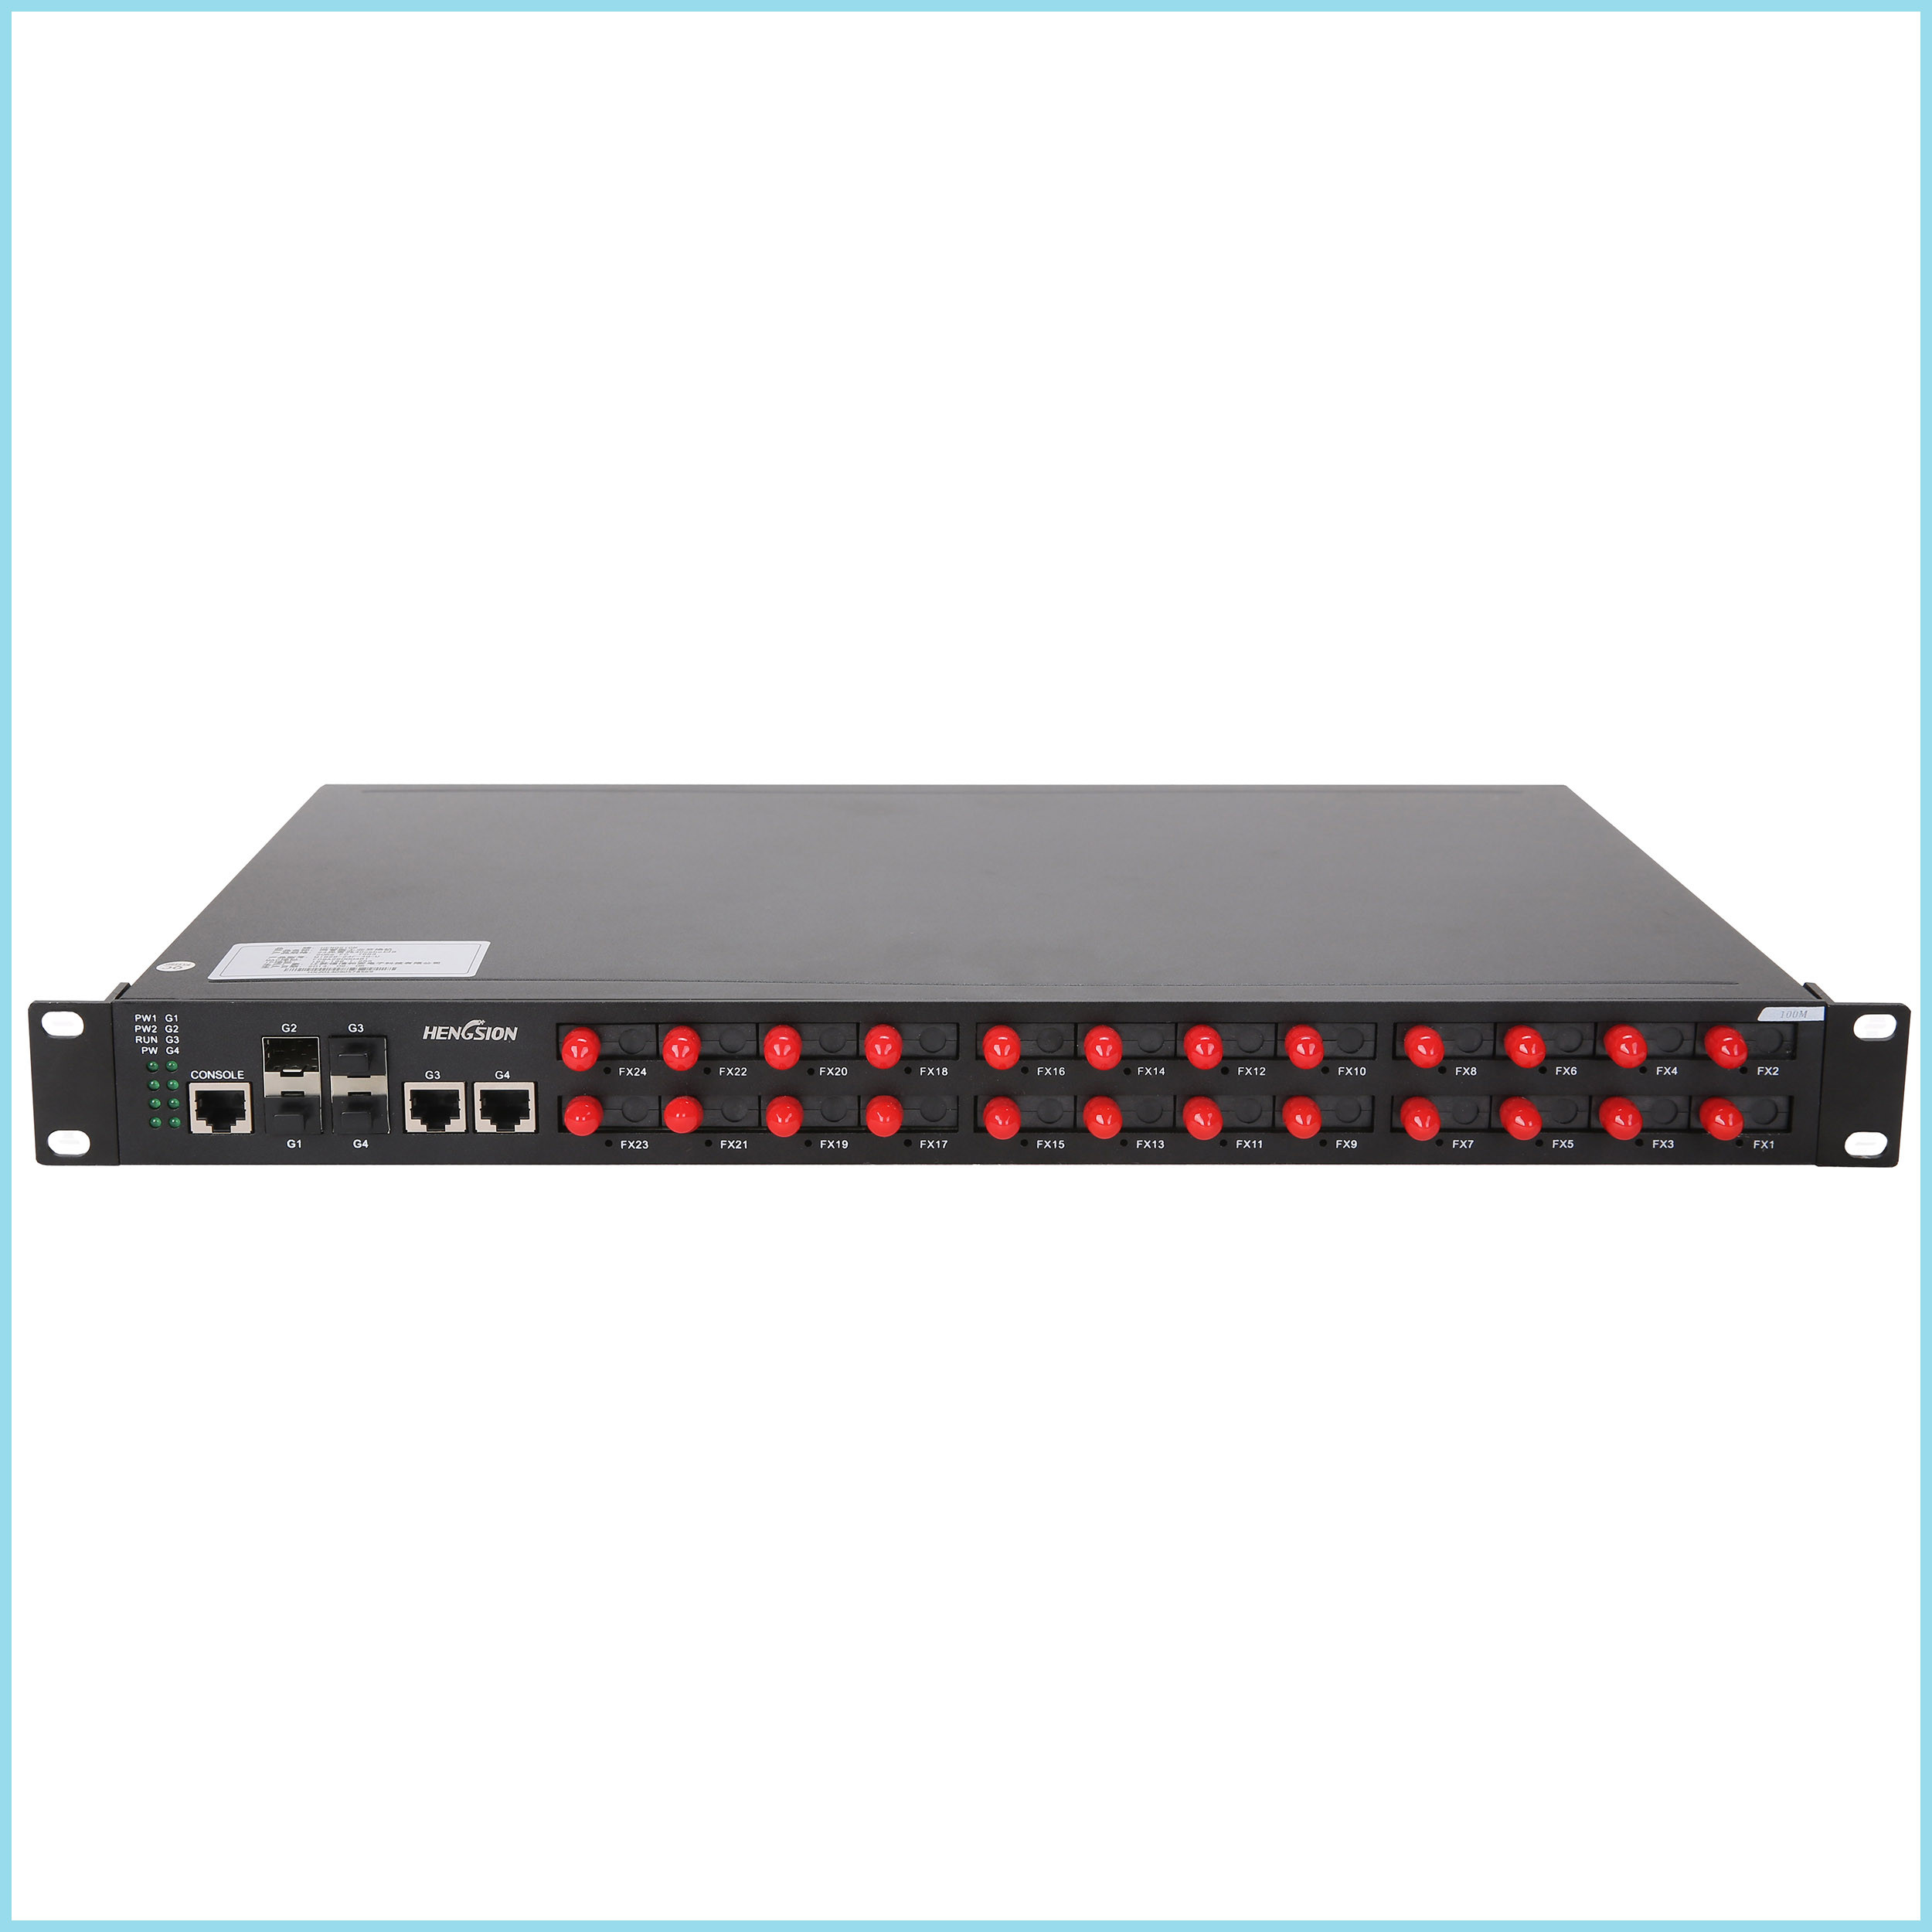 Full duplex wide switching bandwidth Unmanaged 28 port Switch 19.6Gbps rackmount ethernet switch